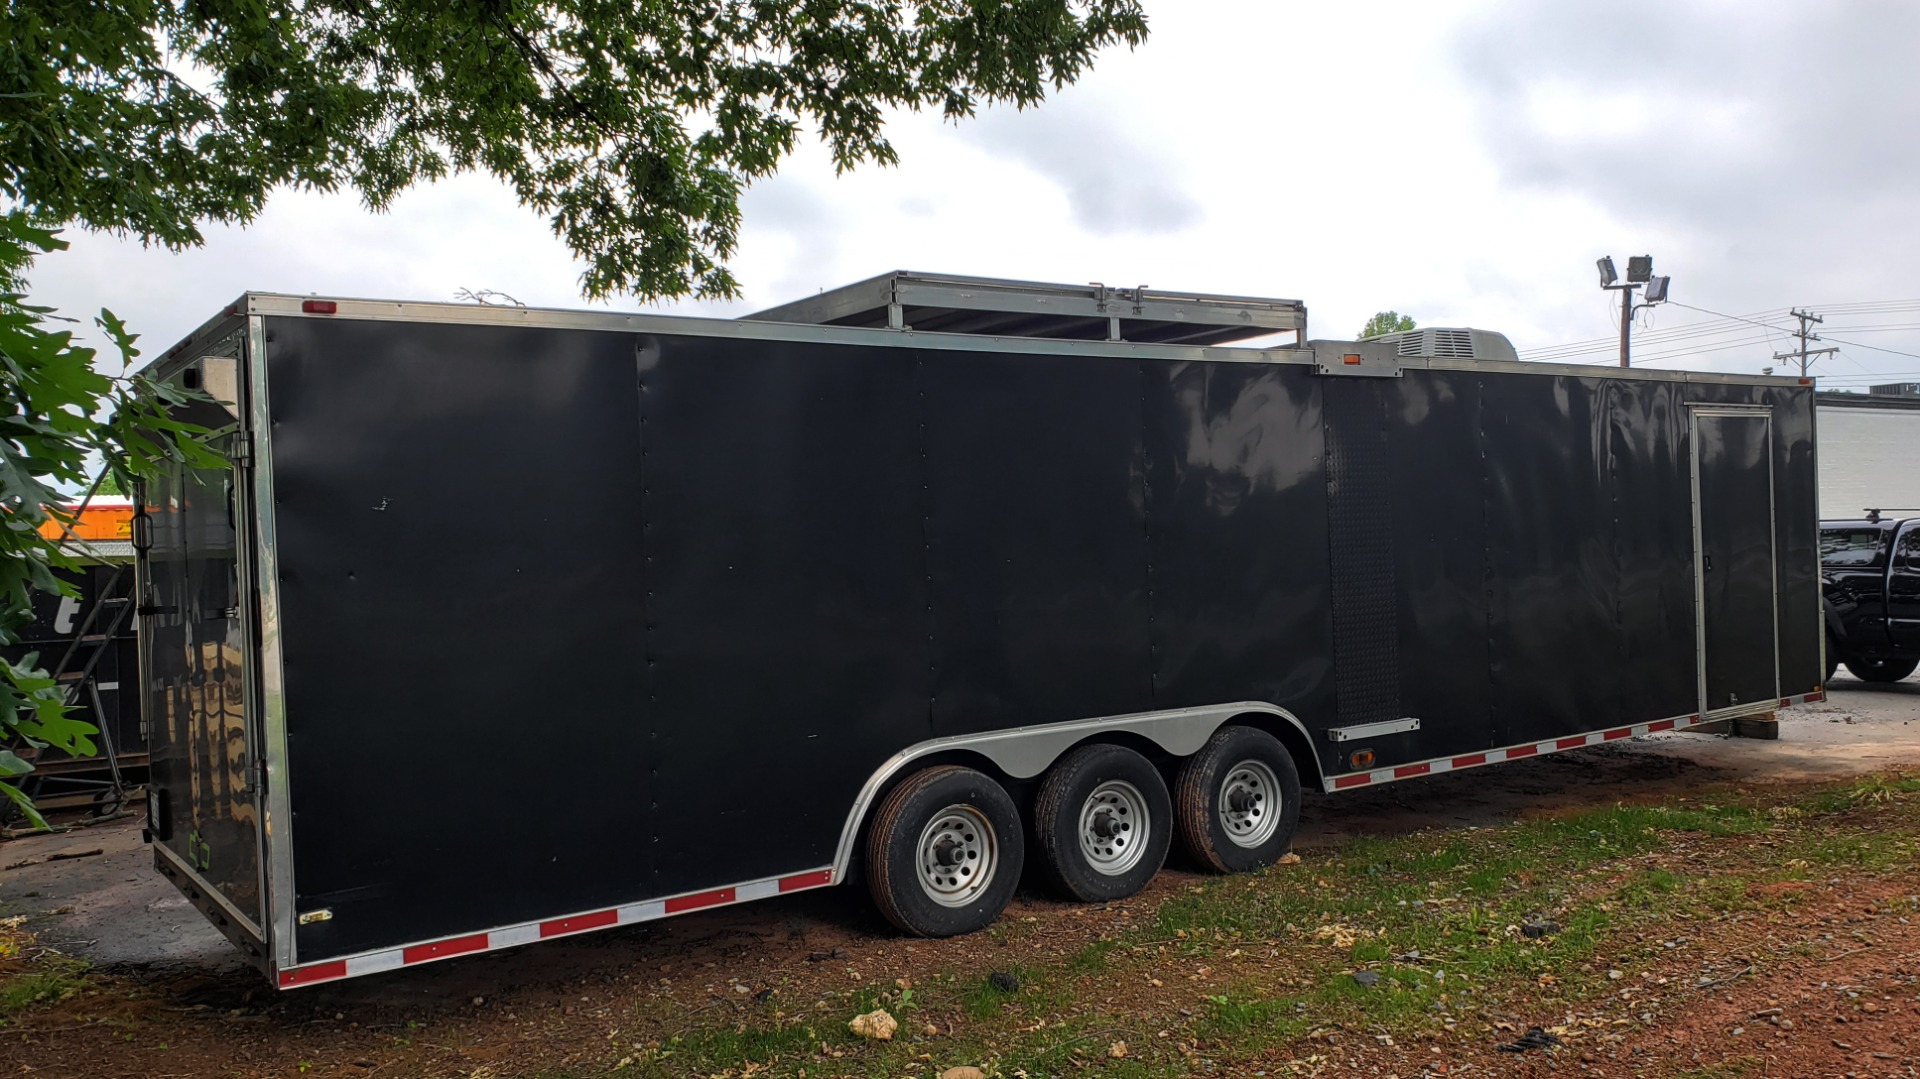 Used 2012 Hurricane 8.5x32 ENCLOSED TRAILER RAMP / AIR CONDITIONING / LOTS OF STORAGE for sale Sold at Formula Imports in Charlotte NC 28227 6